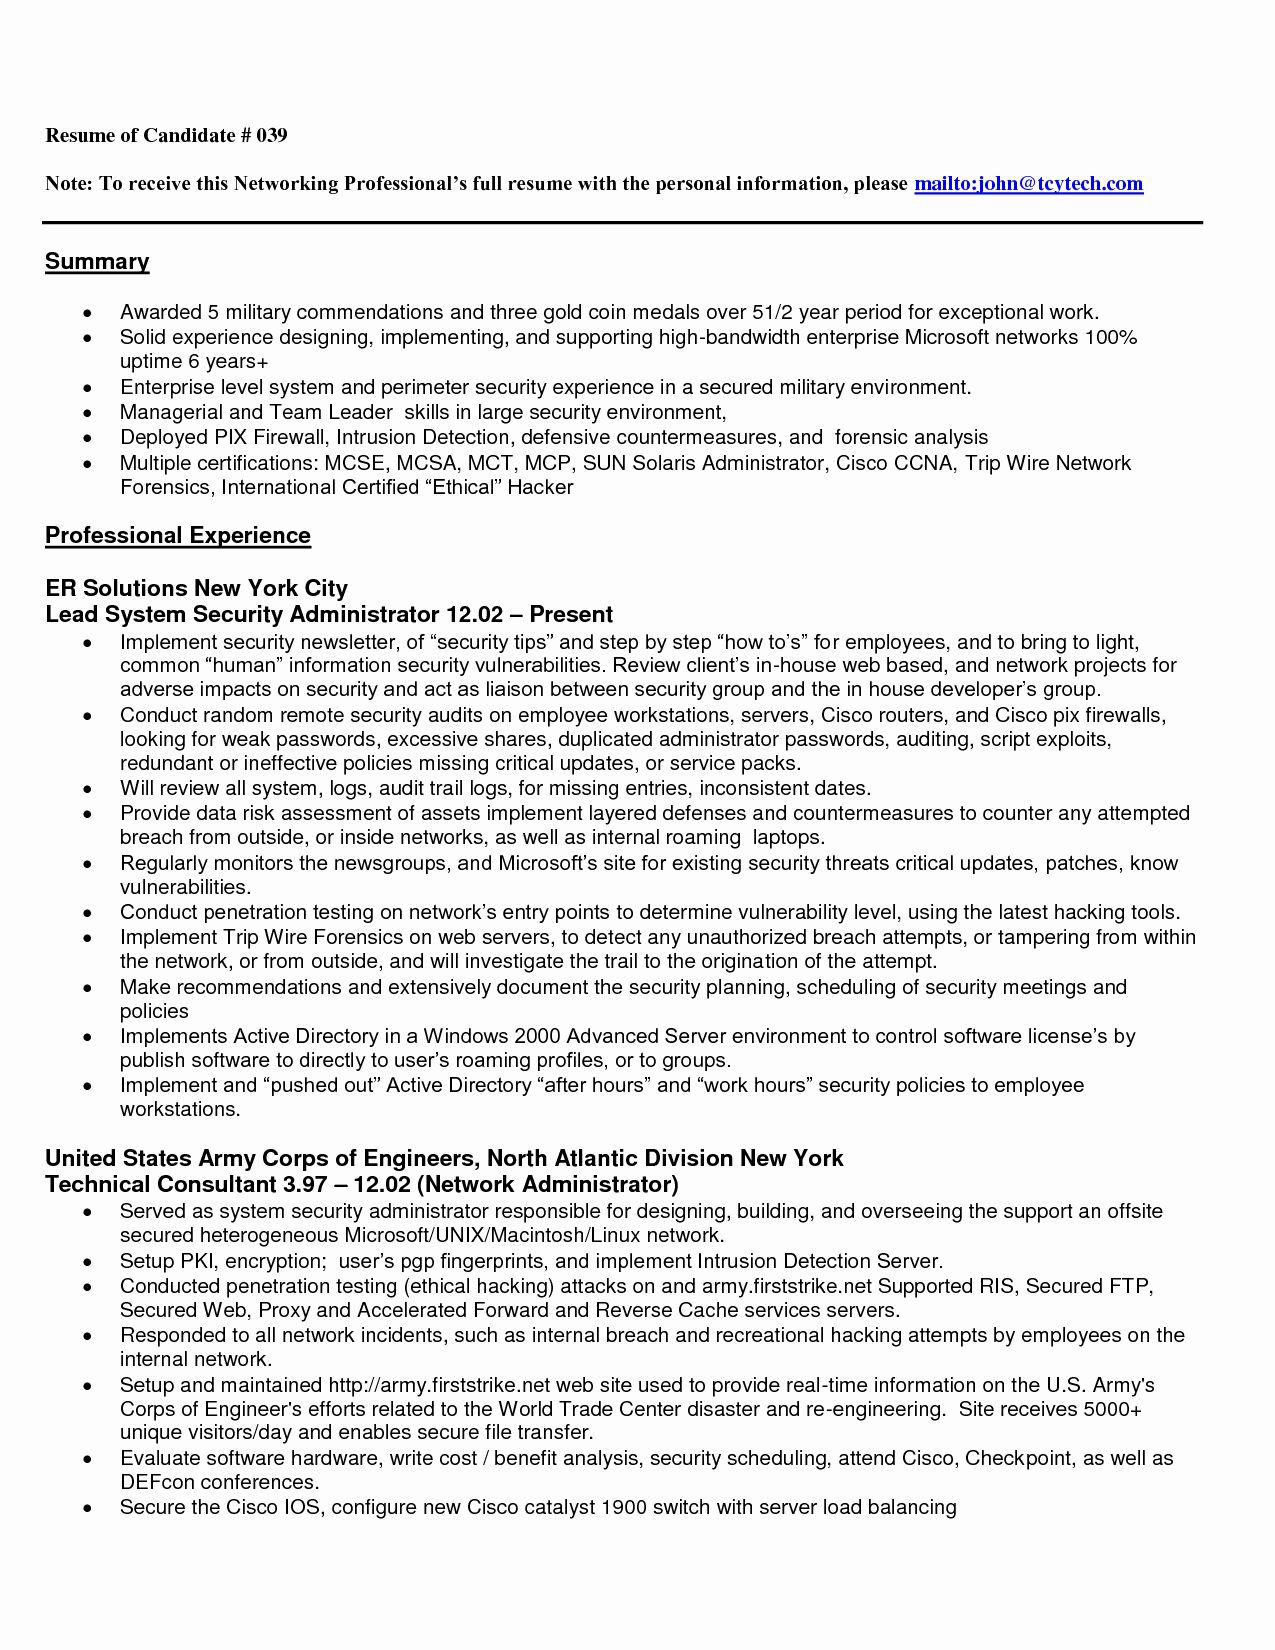 entry level manufacturing engineer resume line 17qq network sample hrthtetwhqx expert Resume Entry Level Network Engineer Resume Sample